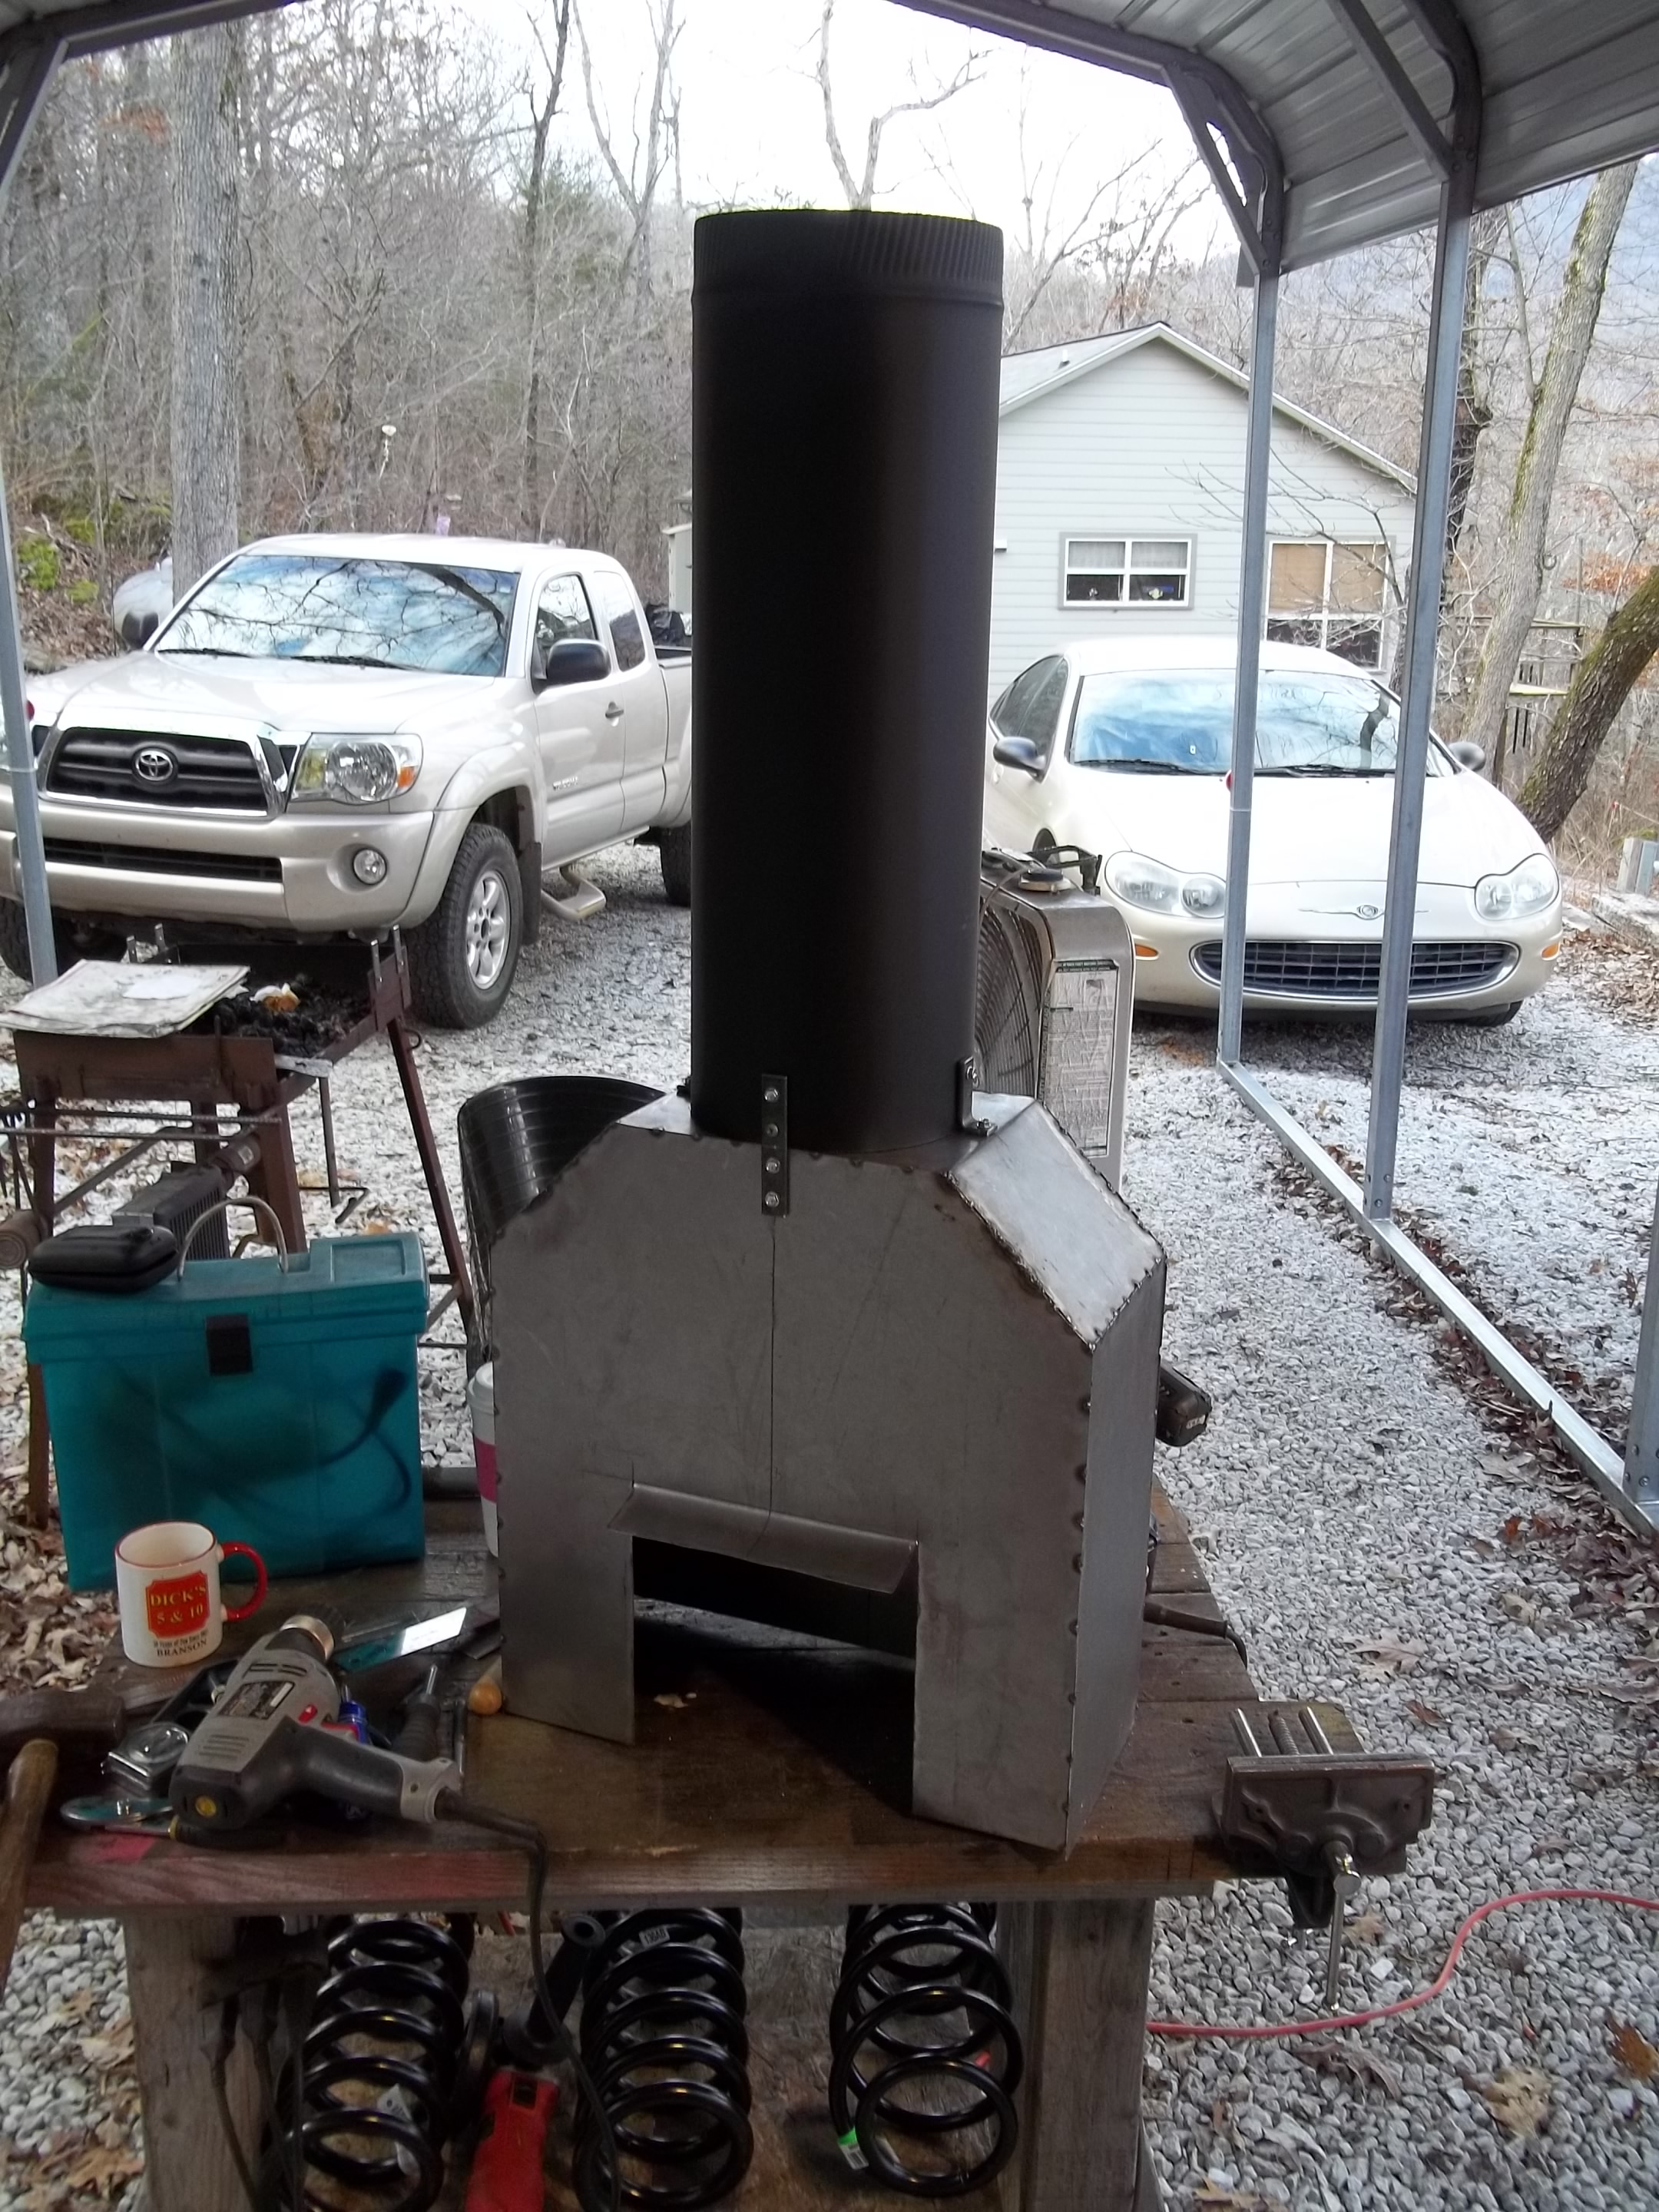 Break Drum Forge Will This Work Solid Fuel Forges I